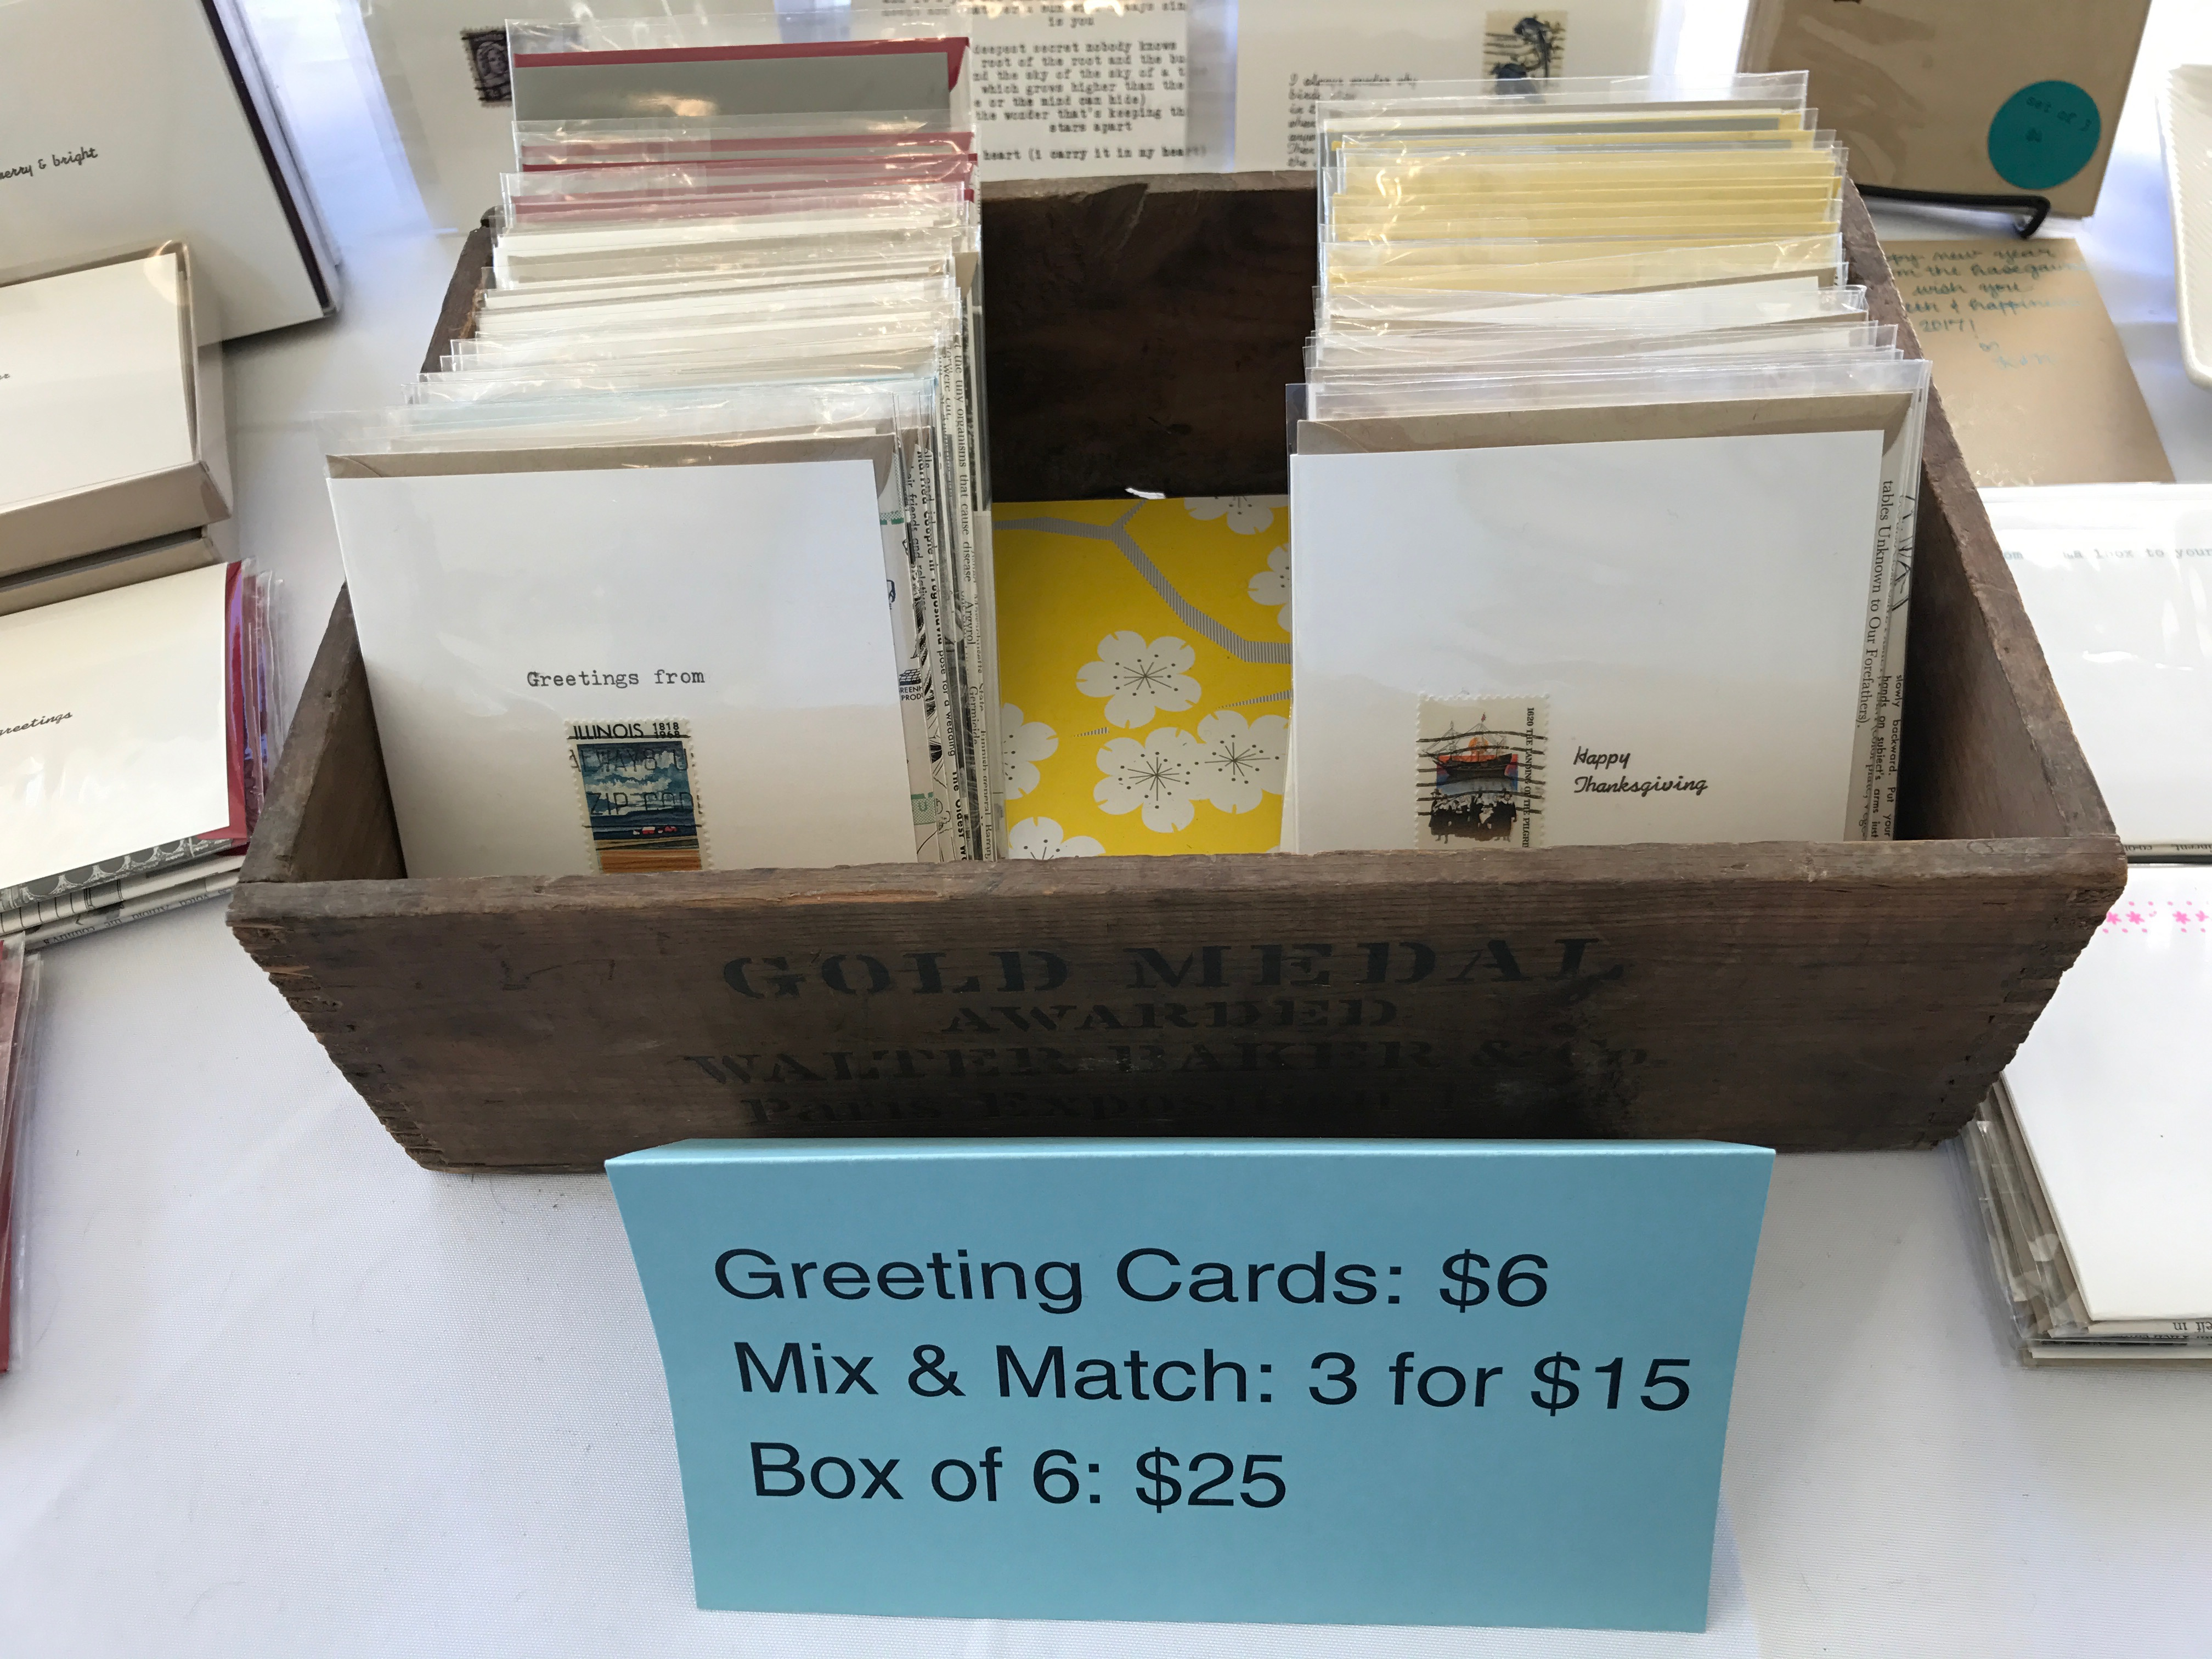 Greeting card display craft show table 2 petite boutique pleasant 4032 3024 in m4hsunfo